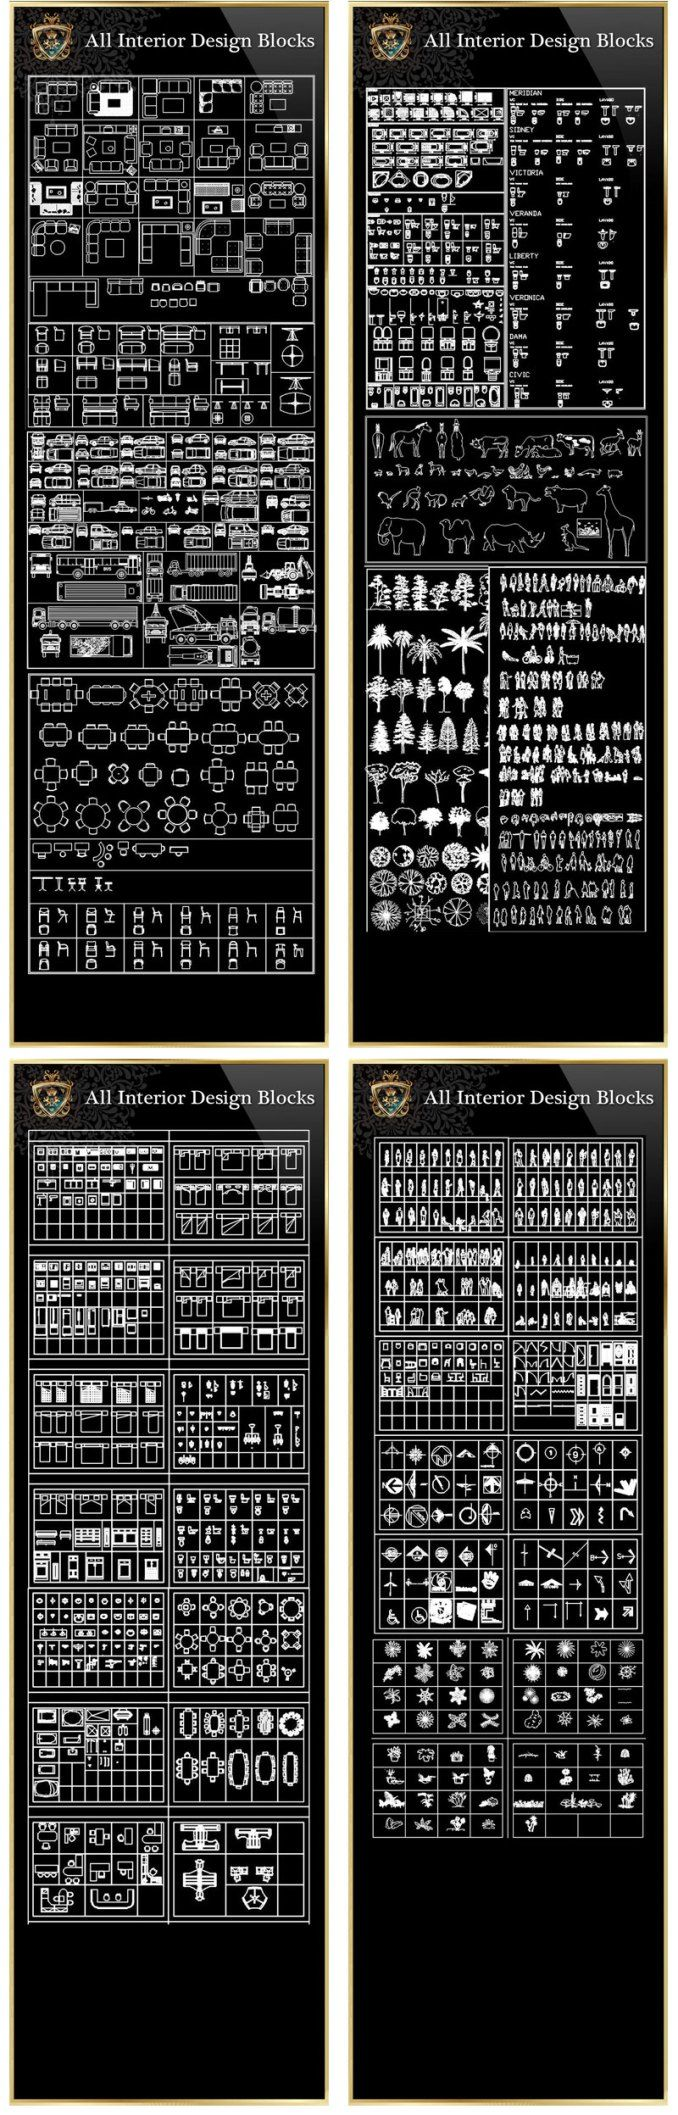 27 best bloques cad images on Pinterest | Cad blocks, Cad drawing ...